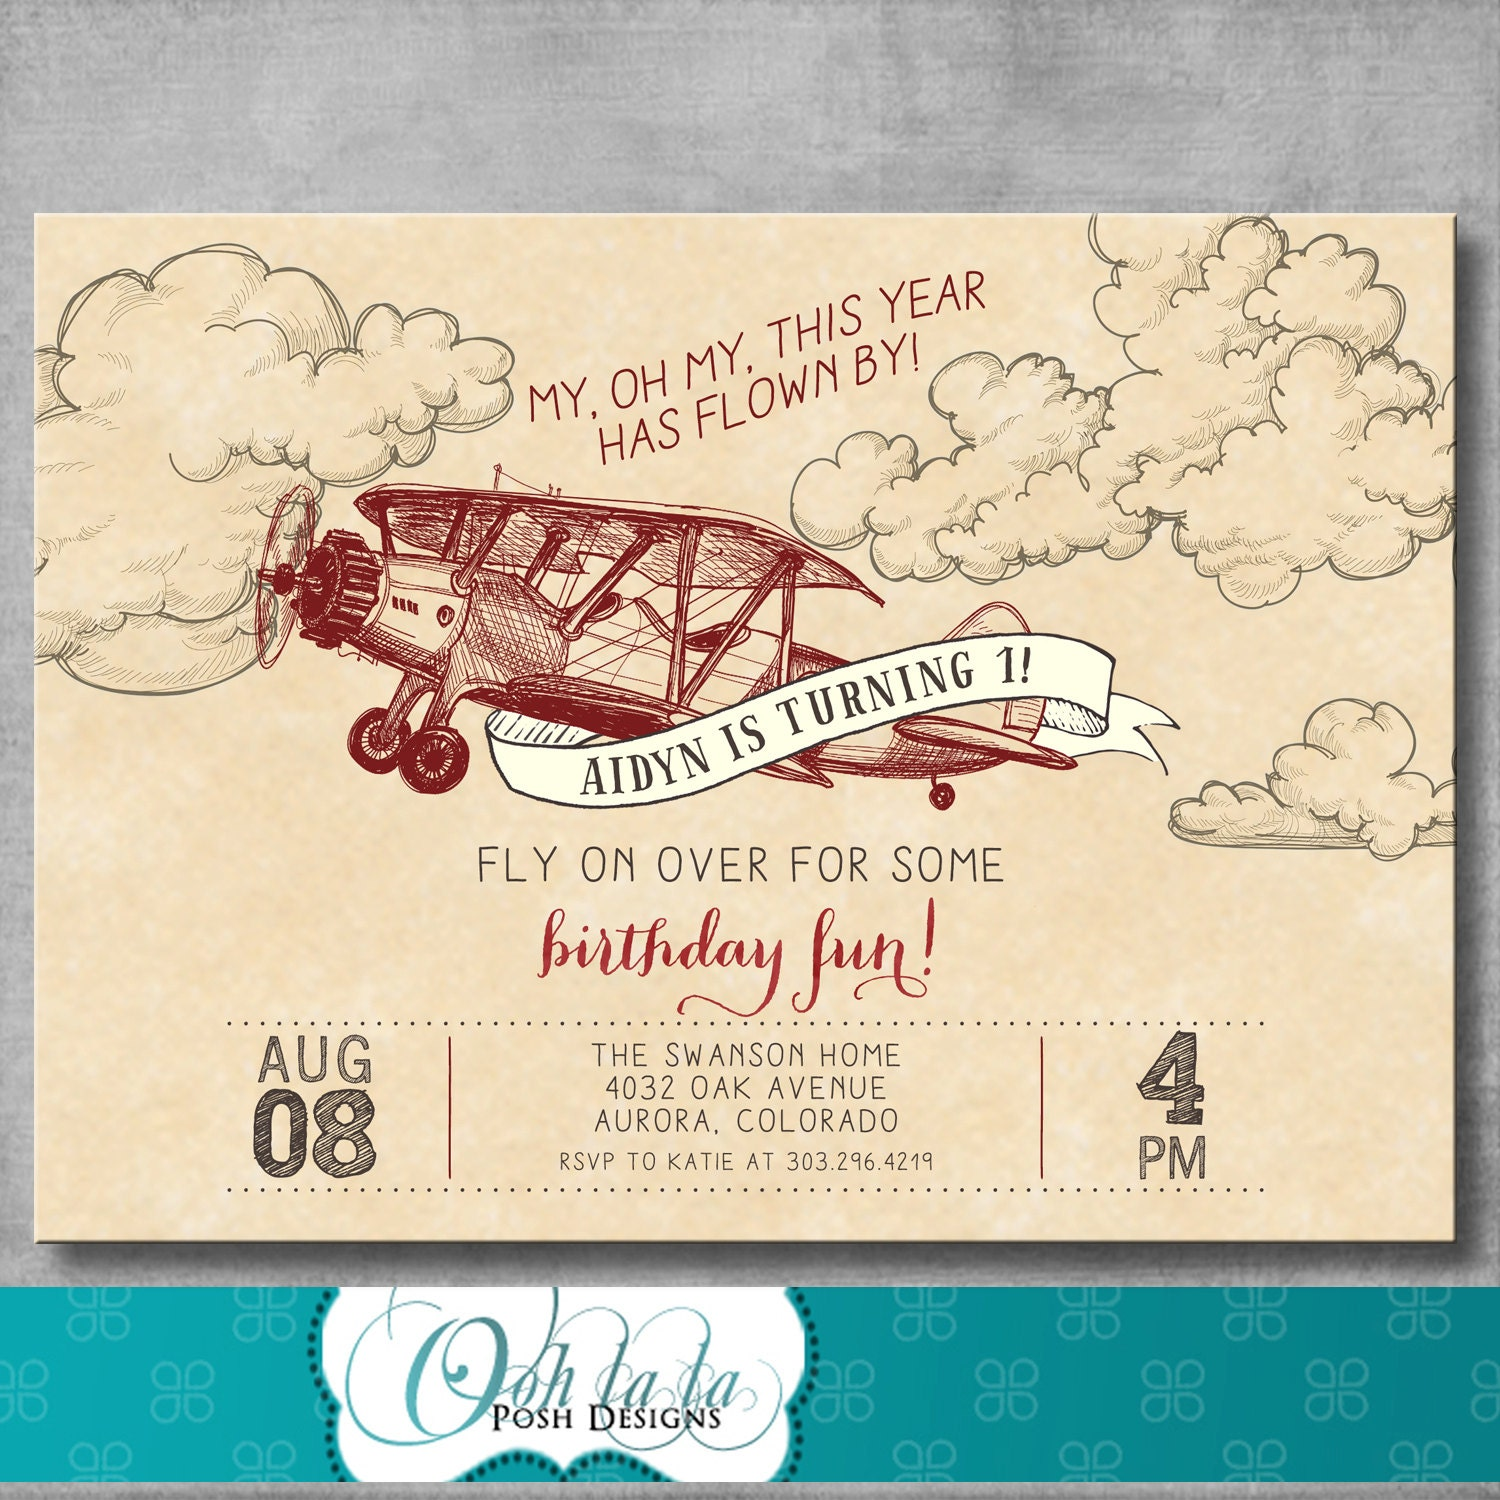 Diy First Birthday Invitations as luxury invitation example